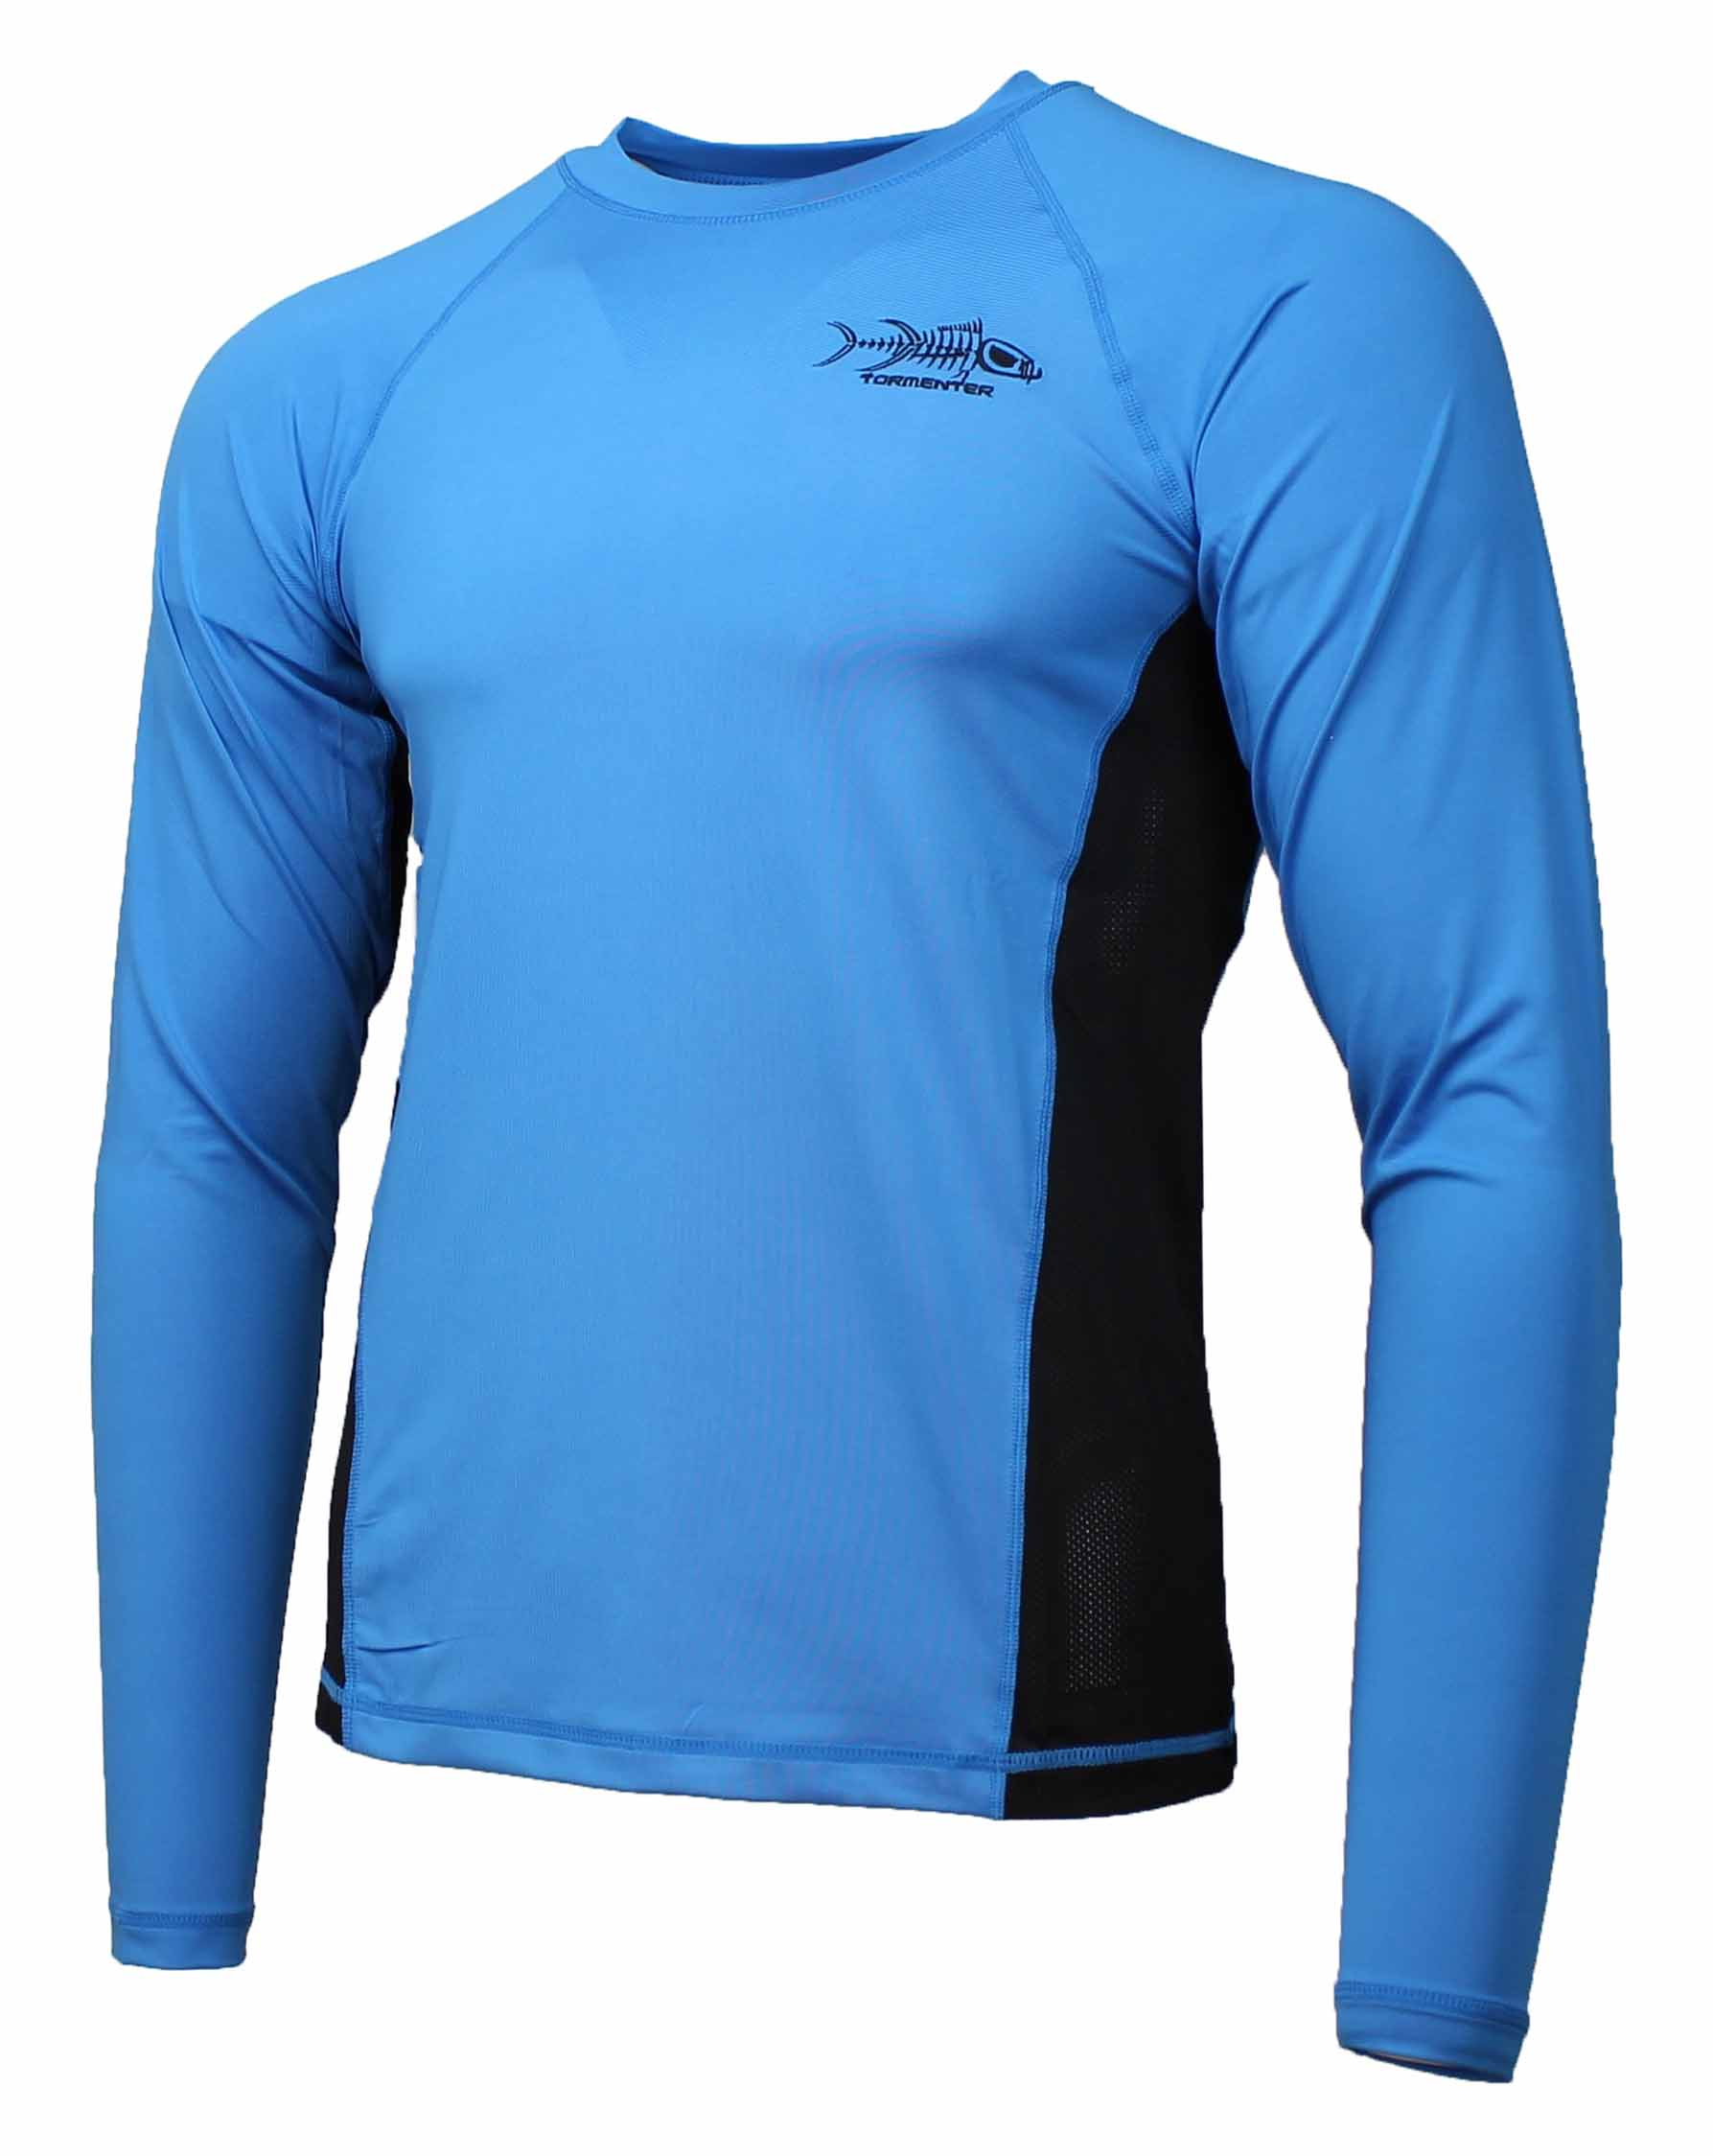 Tormenter men 39 s spf 50 long sleeve fishing shirt ebay for Spf shirts for fishing